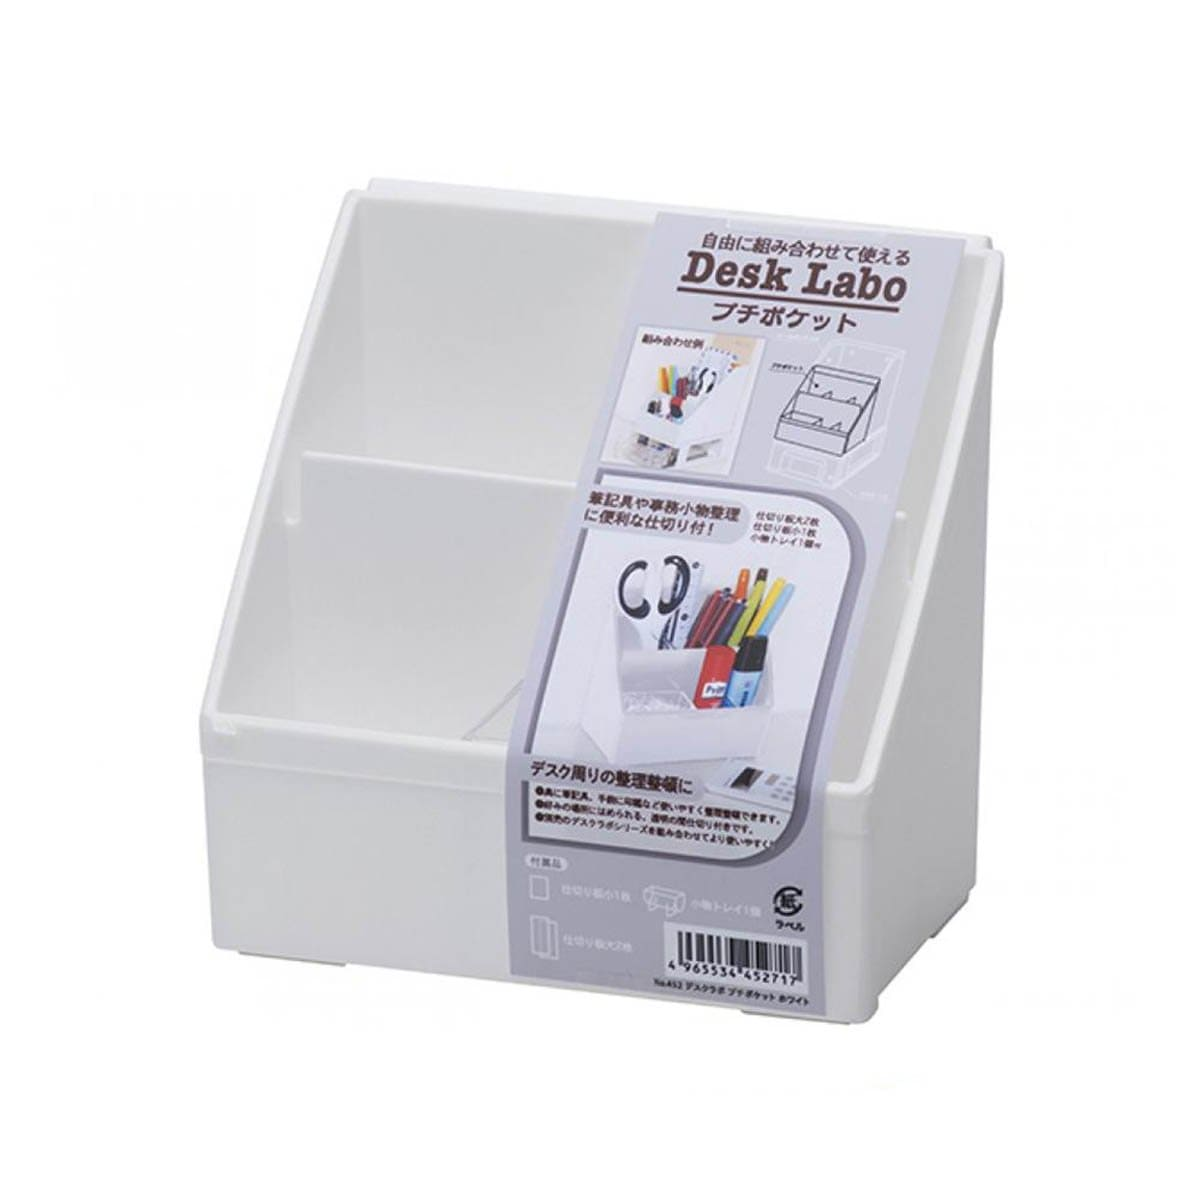 Japanese Plastic Desk Labo Stationary Storage Box White